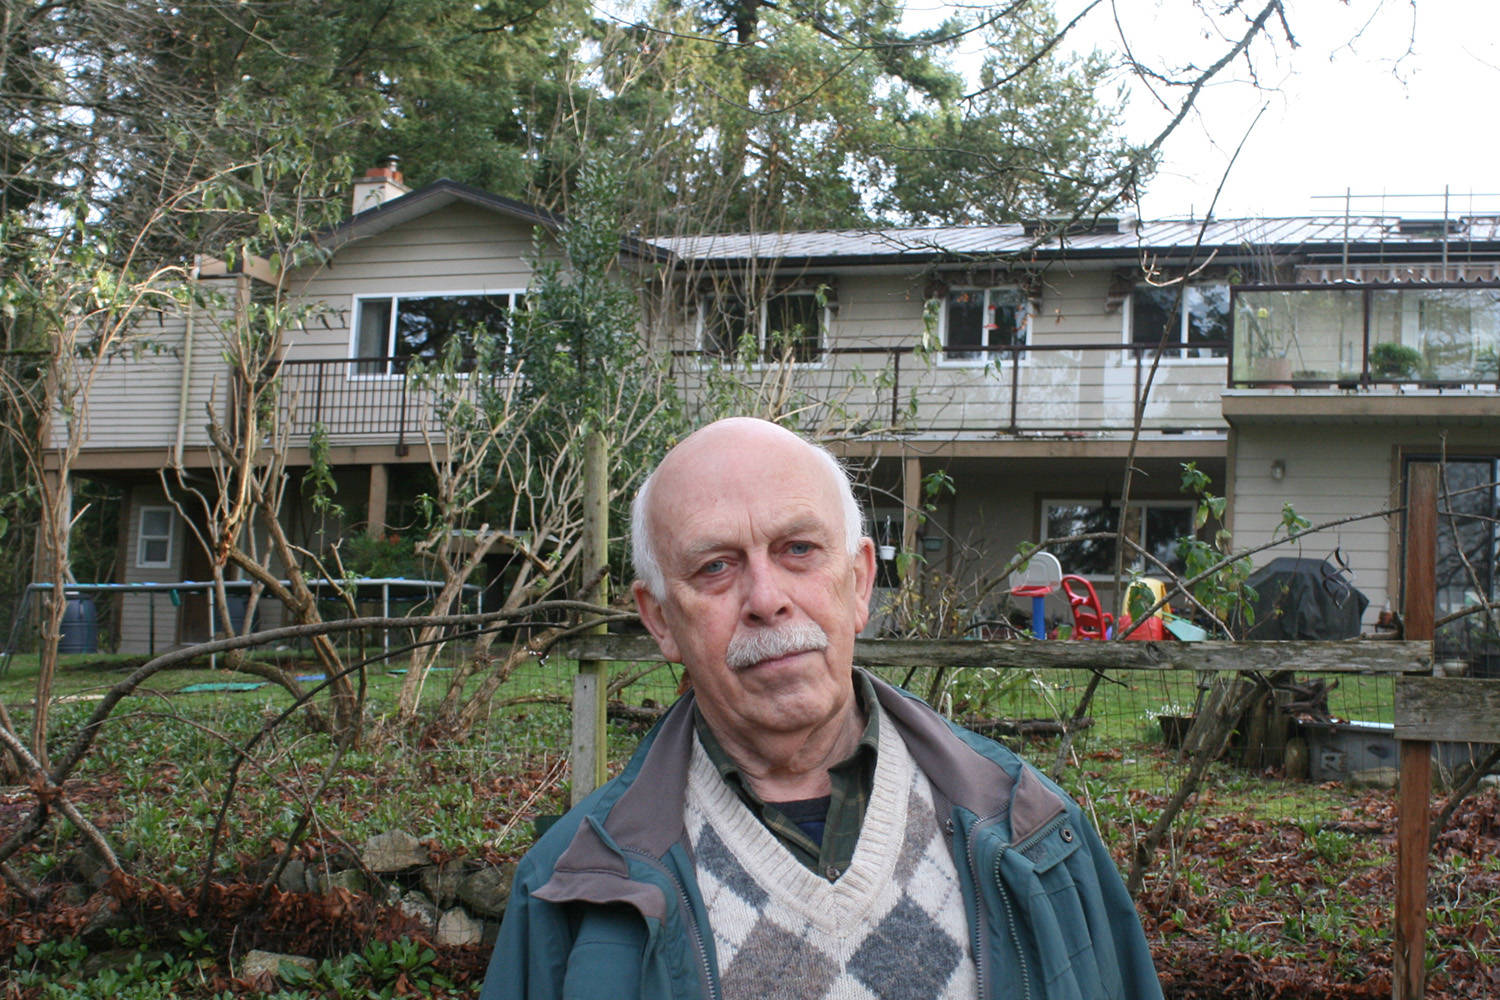 Saanich resident sends distress signal over cell-phone tower